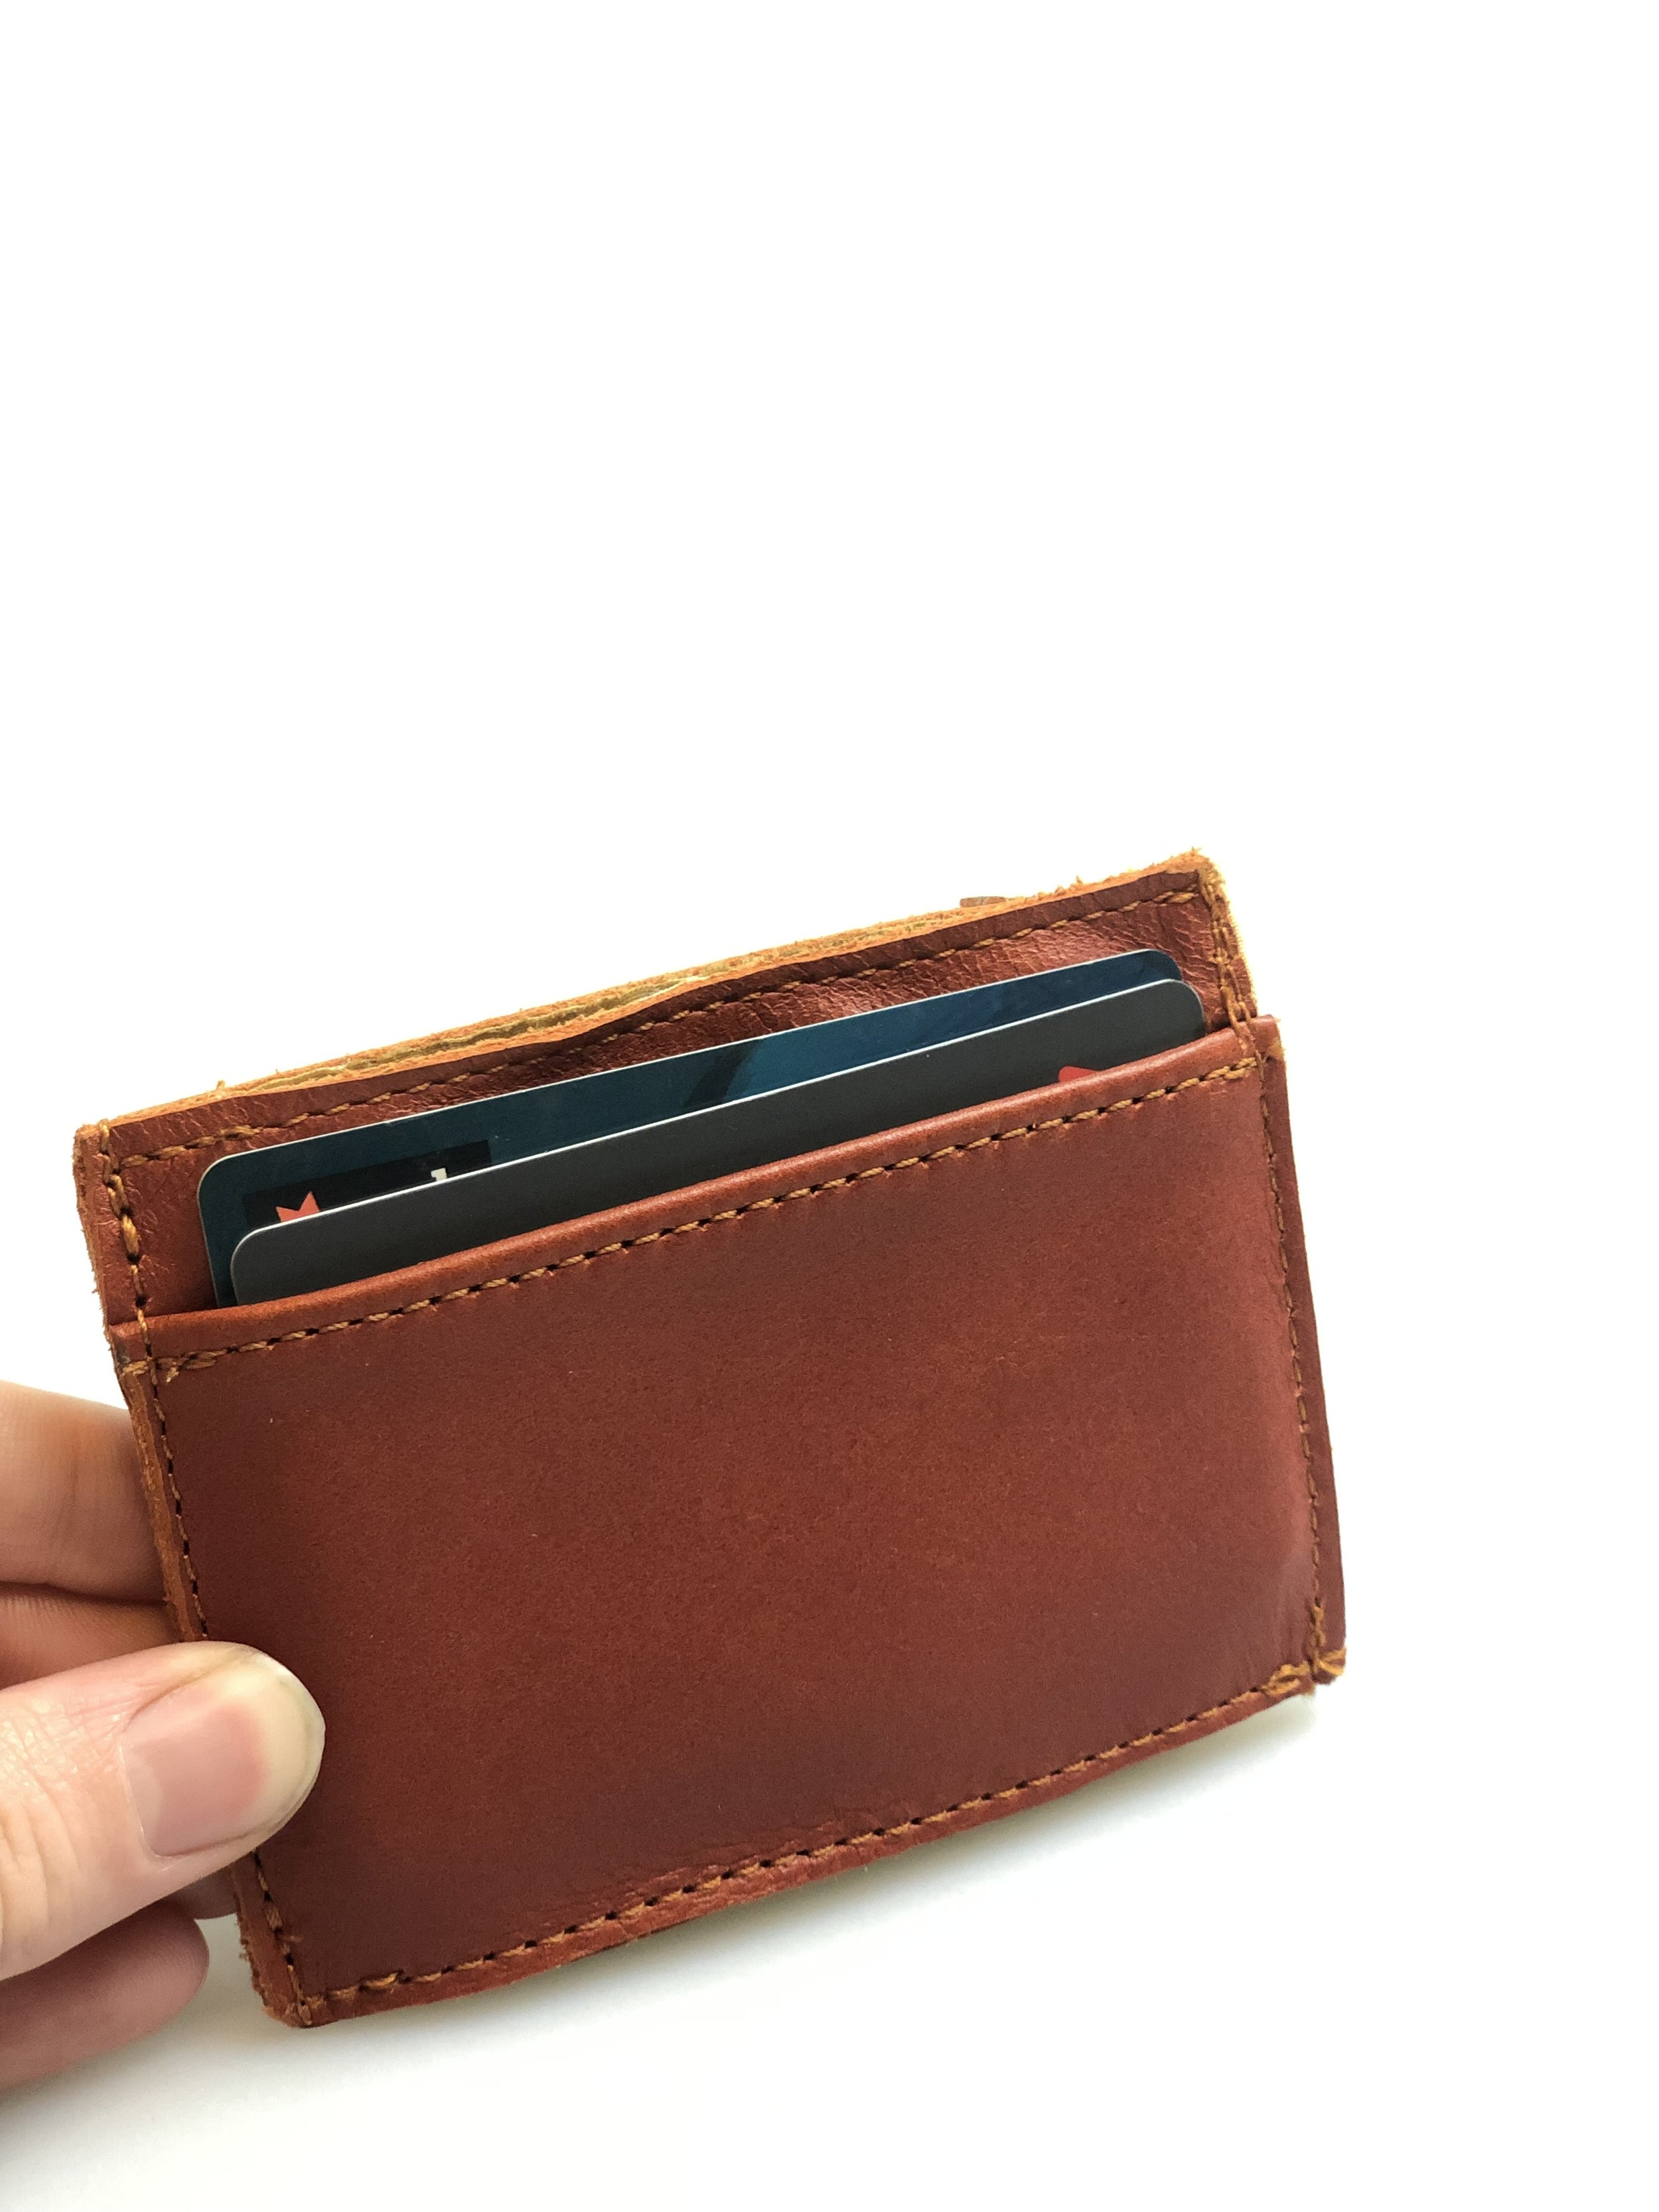 Cash and card - Fits up to 8 cards and has a slot for folded notes in the centre